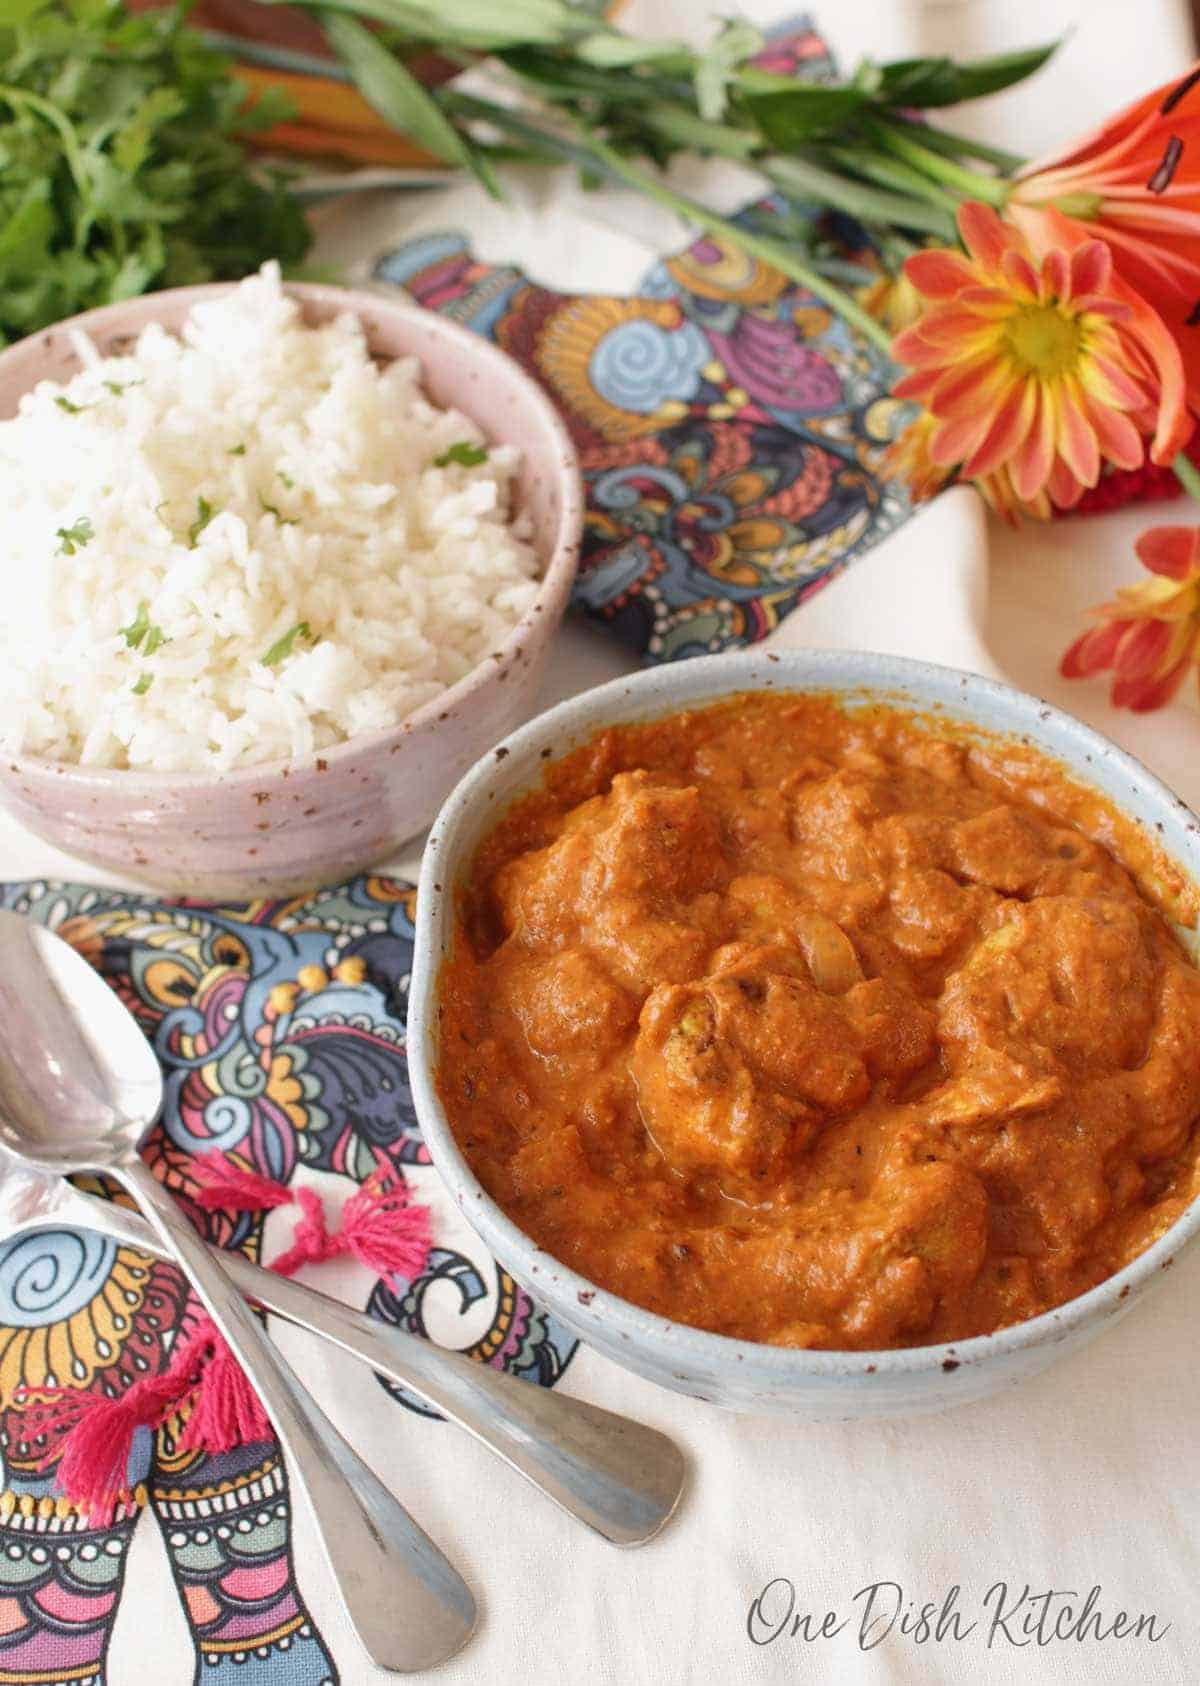 An overhead view of a bowl of butter chicken with a fork and a spoon next to another bowl of white rice